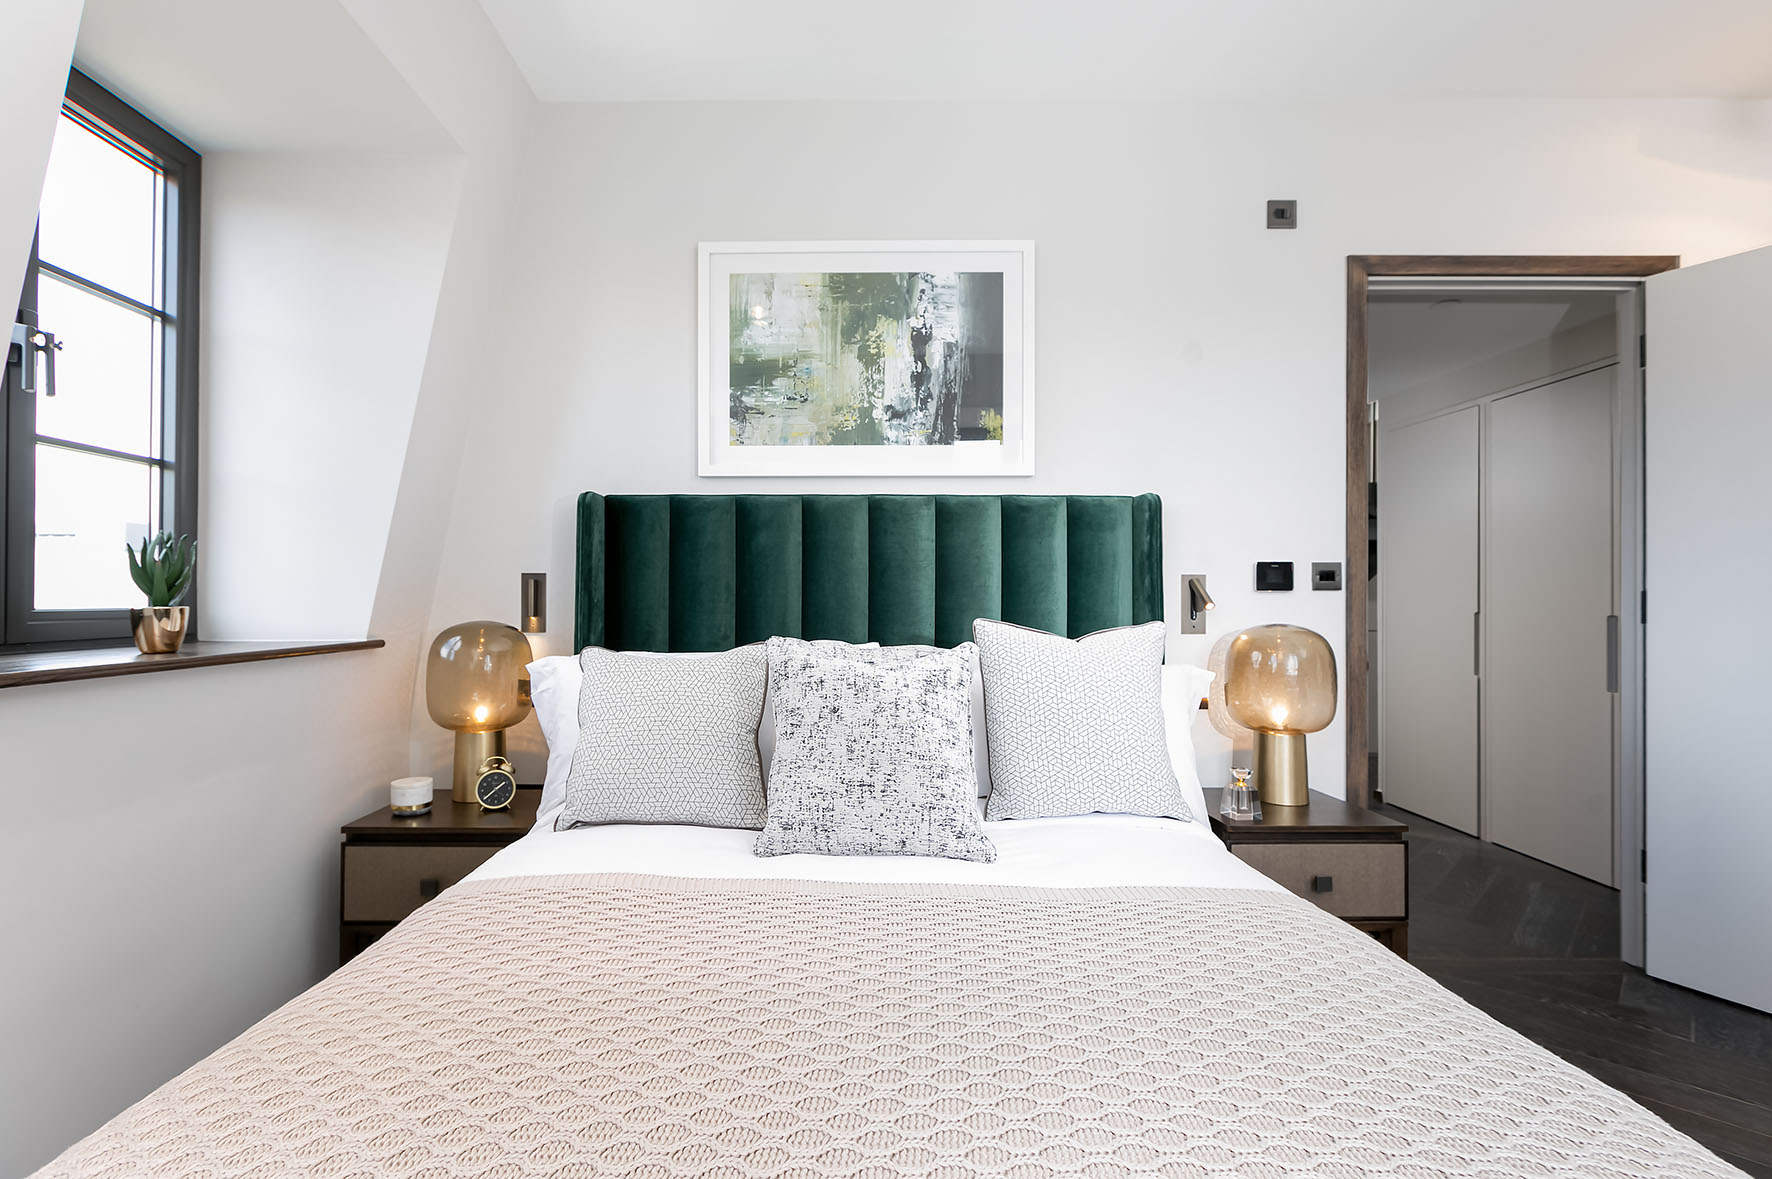 Lovelydays luxury service apartment rental - London - Soho - Great Marlborough St. IX - Lovelysuite - 2 bedrooms - 2 bathrooms - Queen bed - 5 star apartment in london - d2ec182df4f1 - Lovelydays